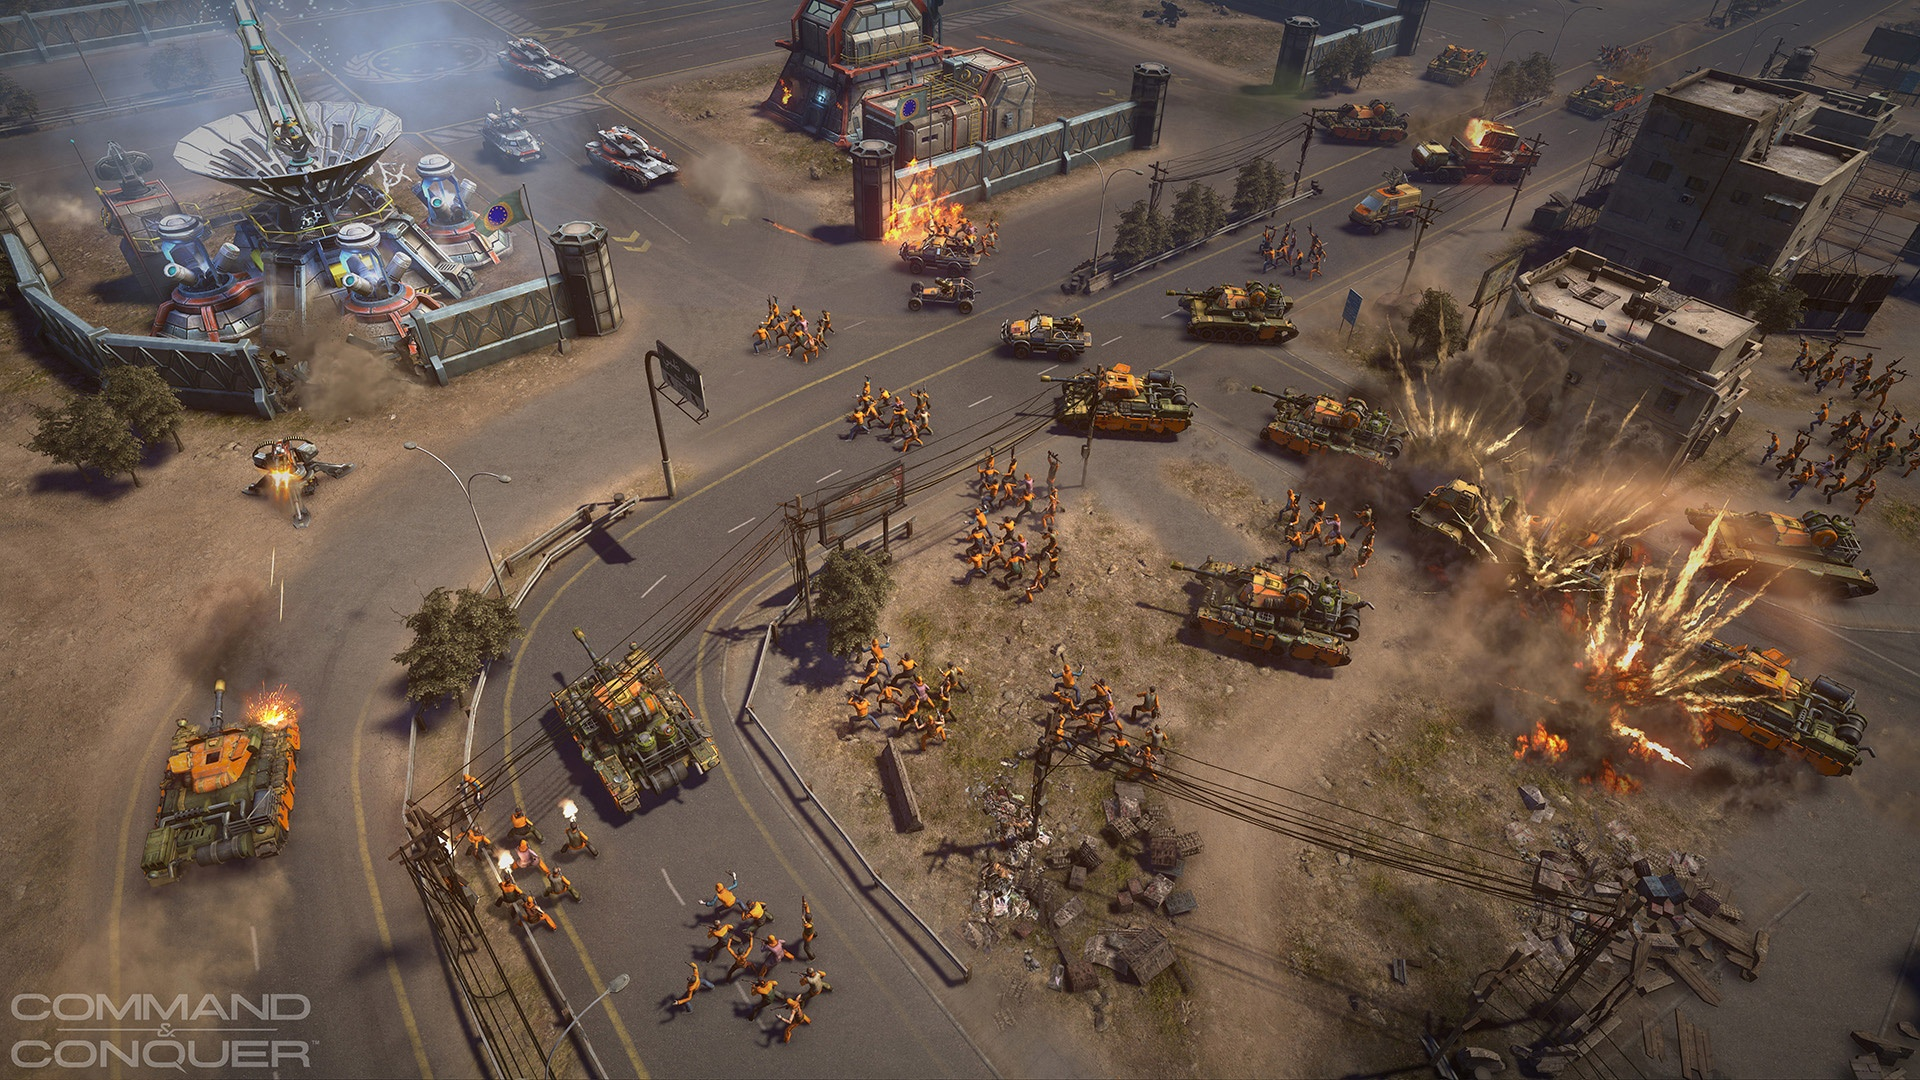 command_conquer_free (6)